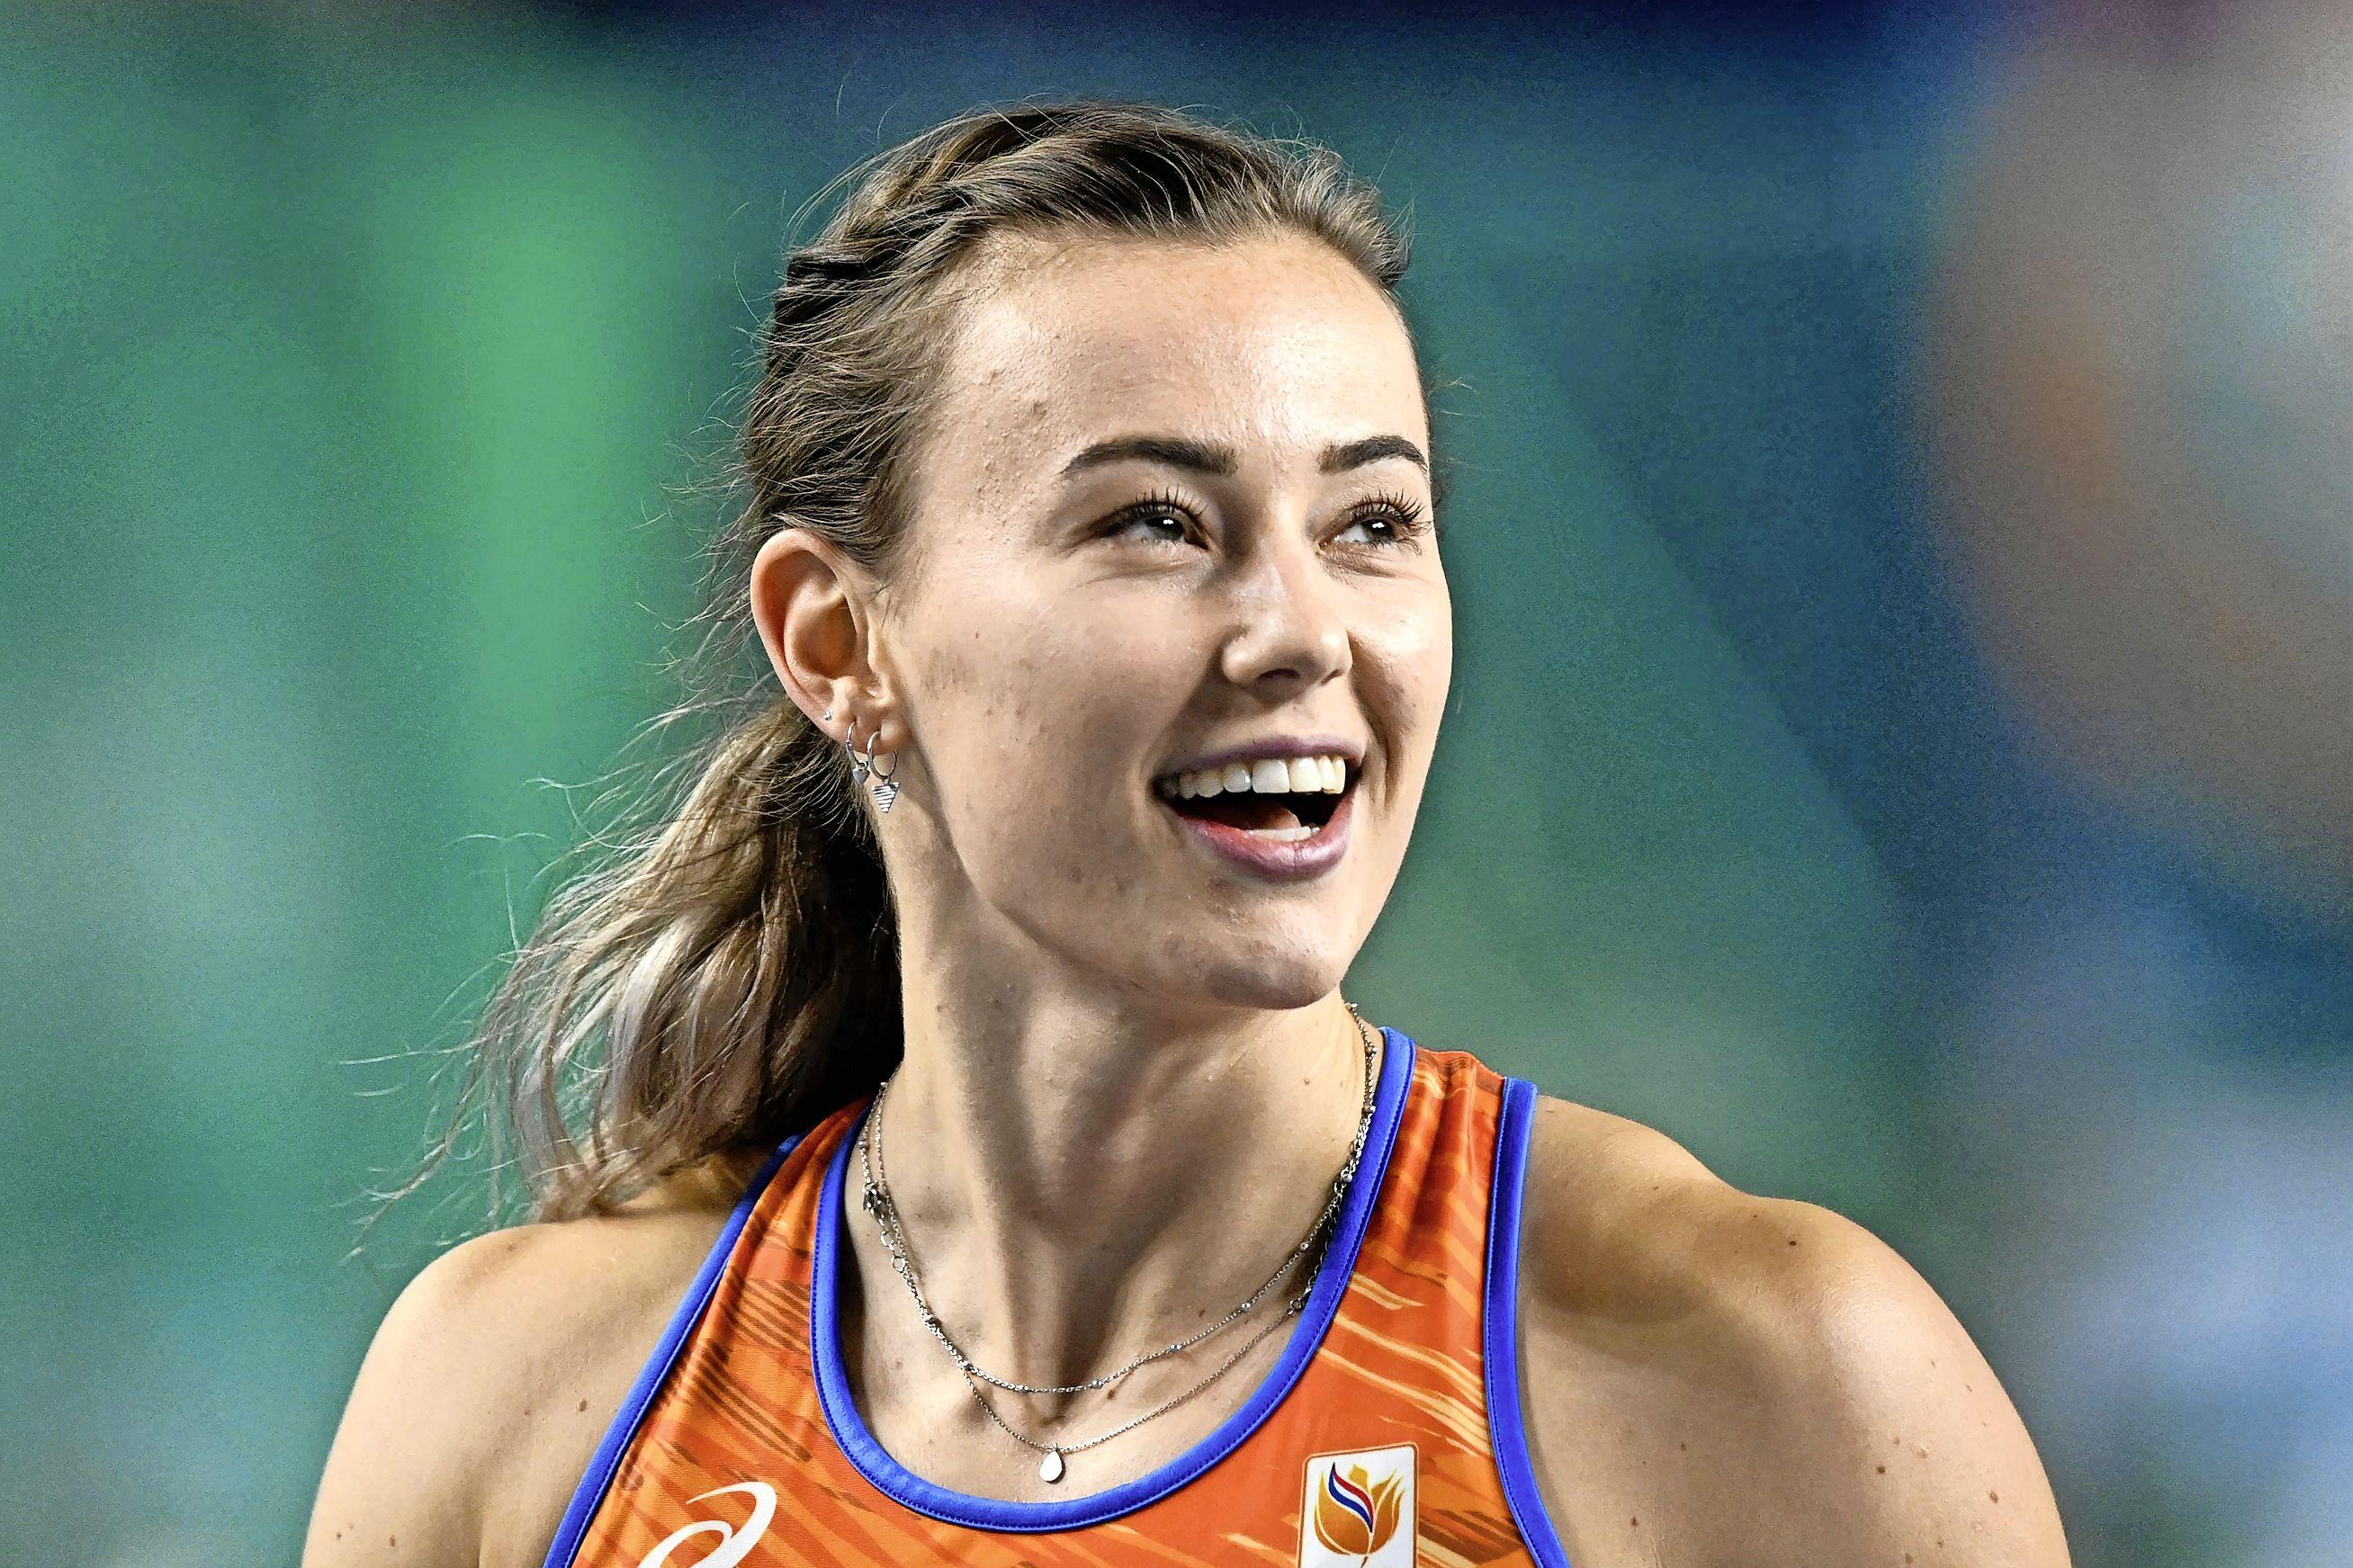 Nadine Visser prolongeert Europese indoortitel op 60 meter horden. Hoogkarspelse atlete is klasse apart [video]